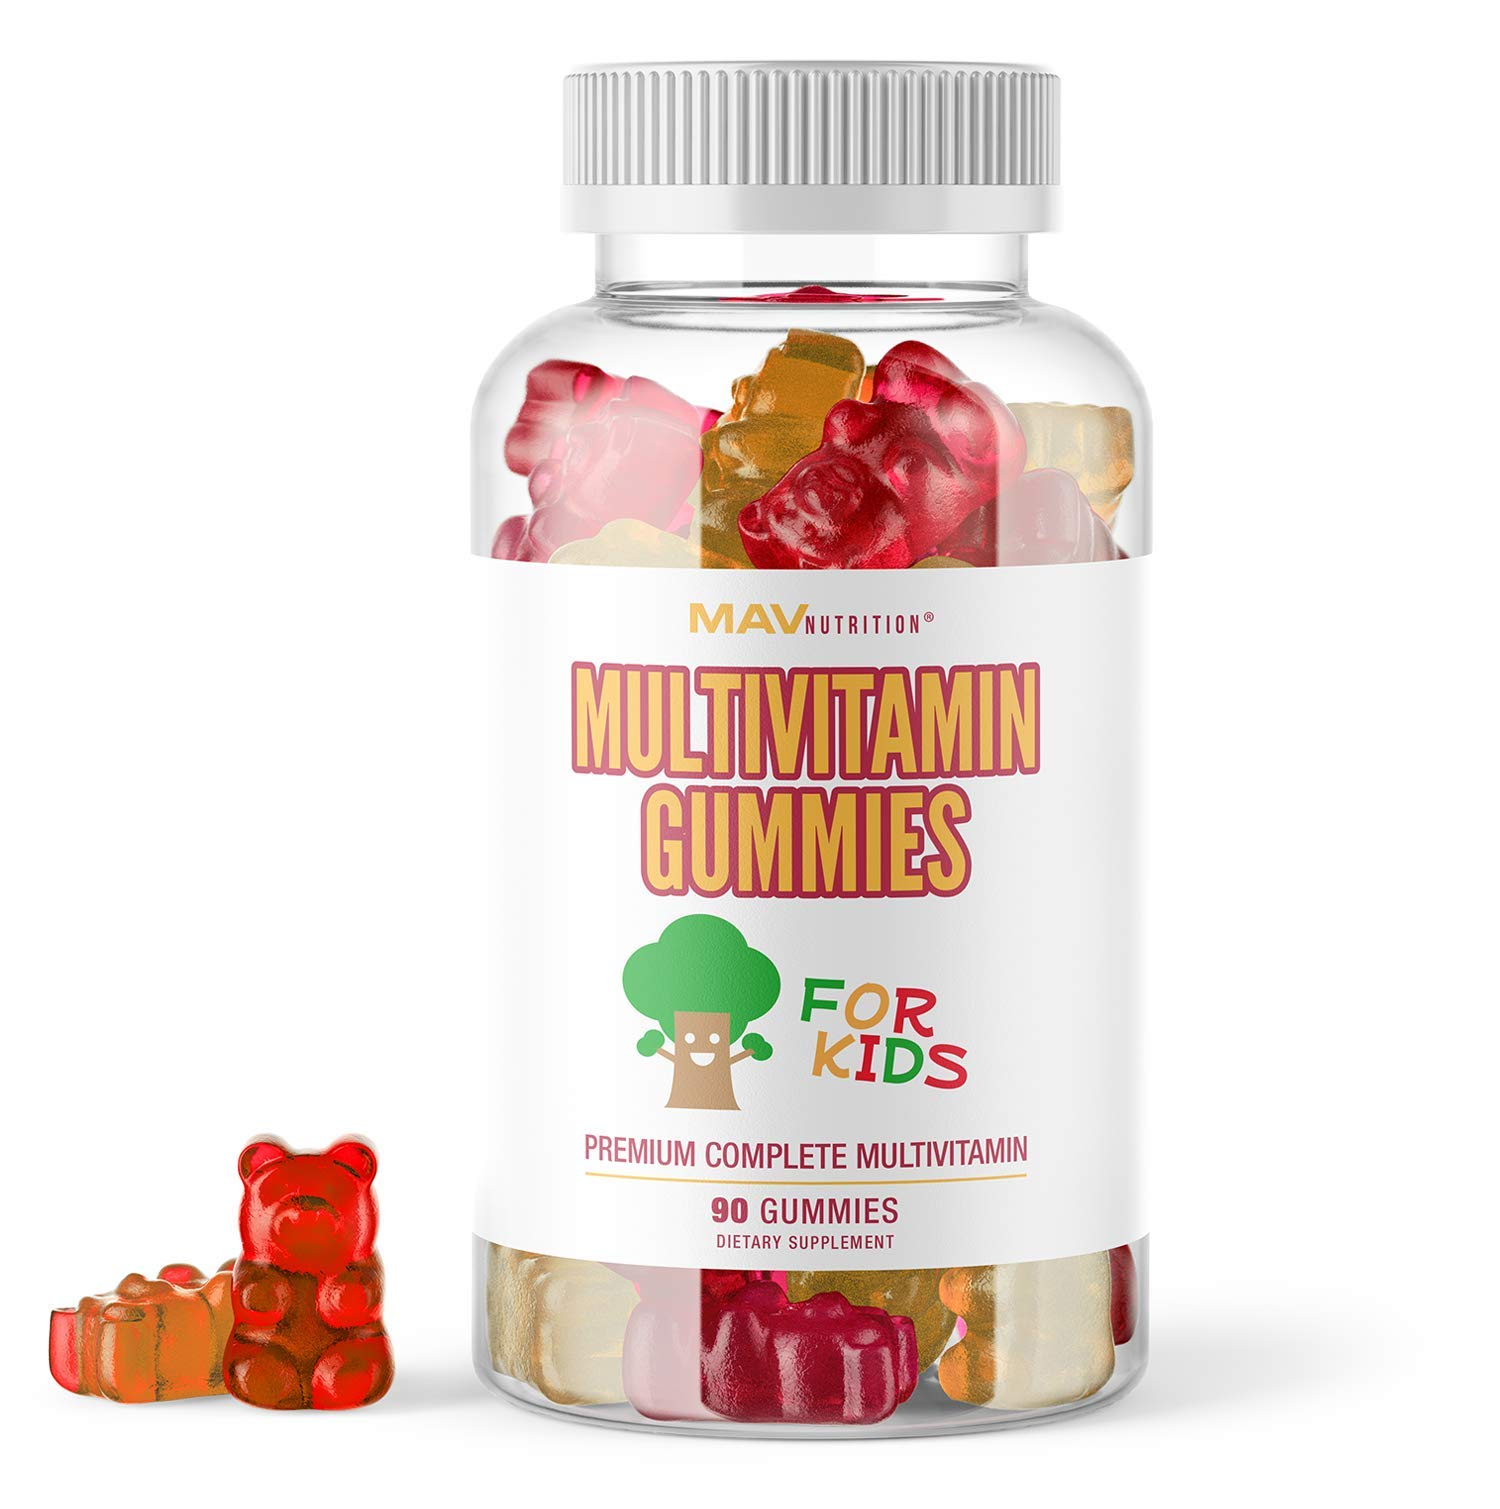 MAV Nutrition Multivitamins for Kids Gummies - All Essential Vitamins with Vitamin D and Zinc - Gluten Free, Non-GMO, Natural Flavoring; 90 Count